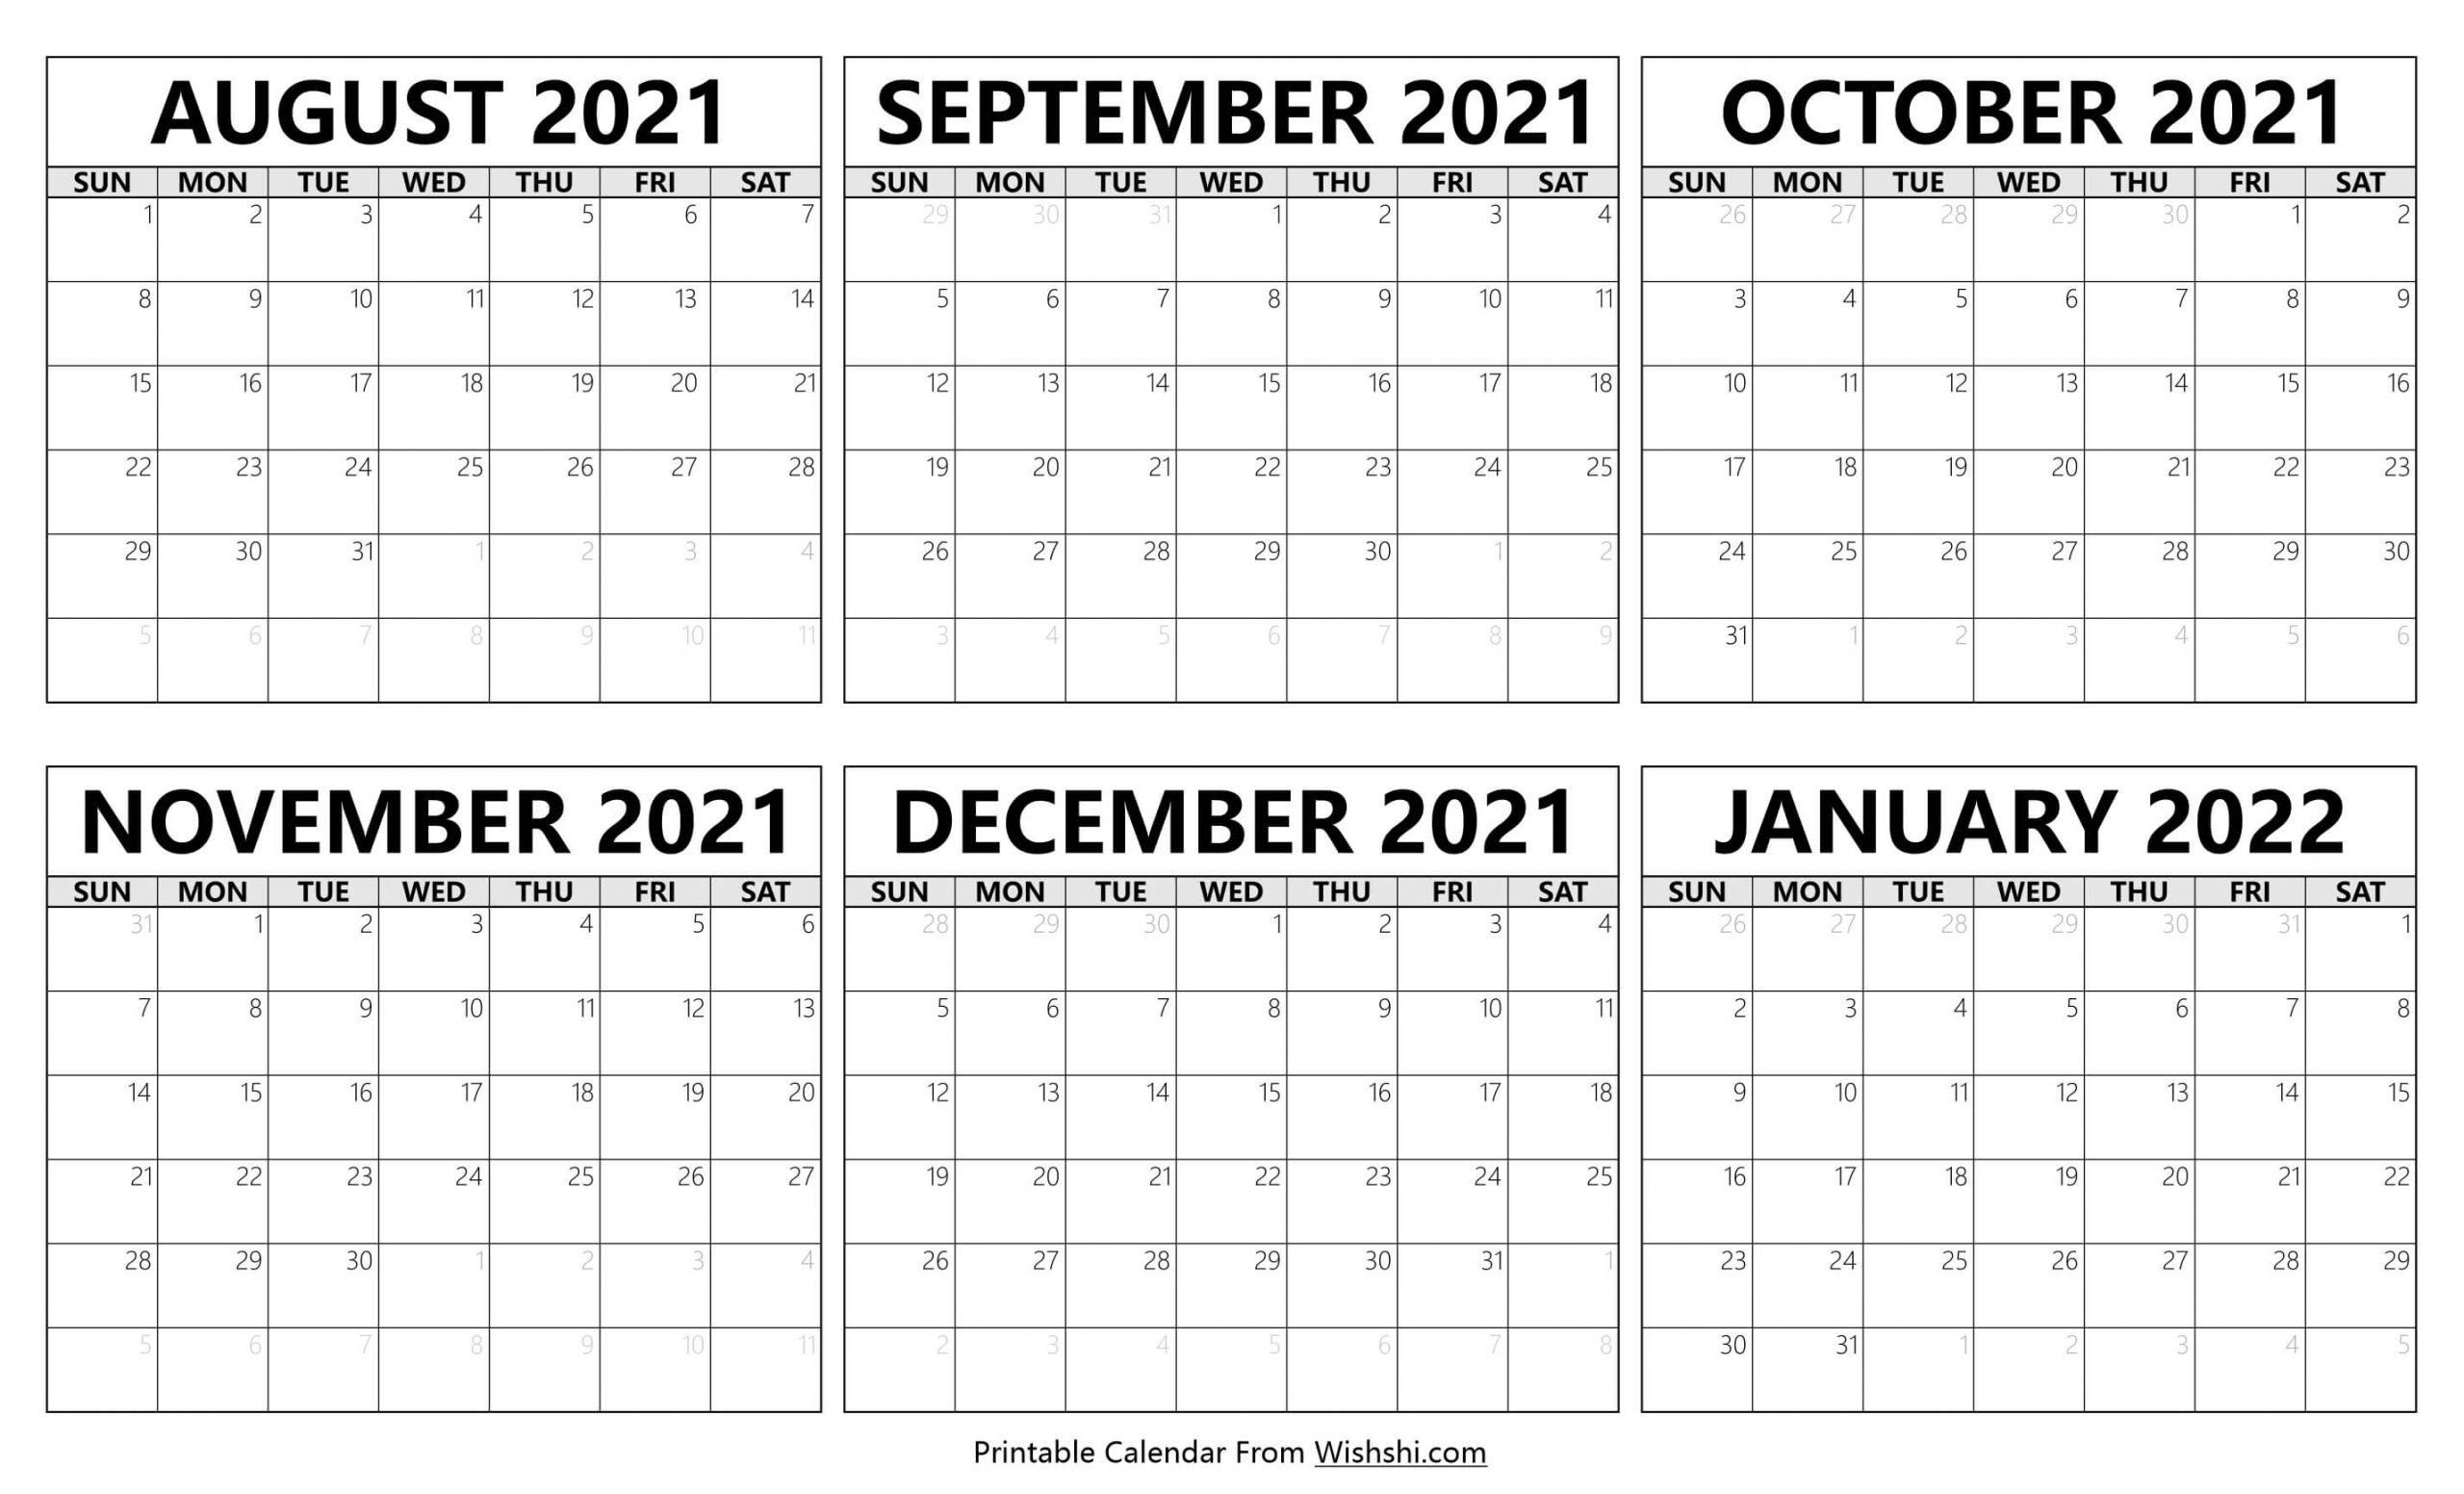 Calendar 2021 August to January 2022 scaled